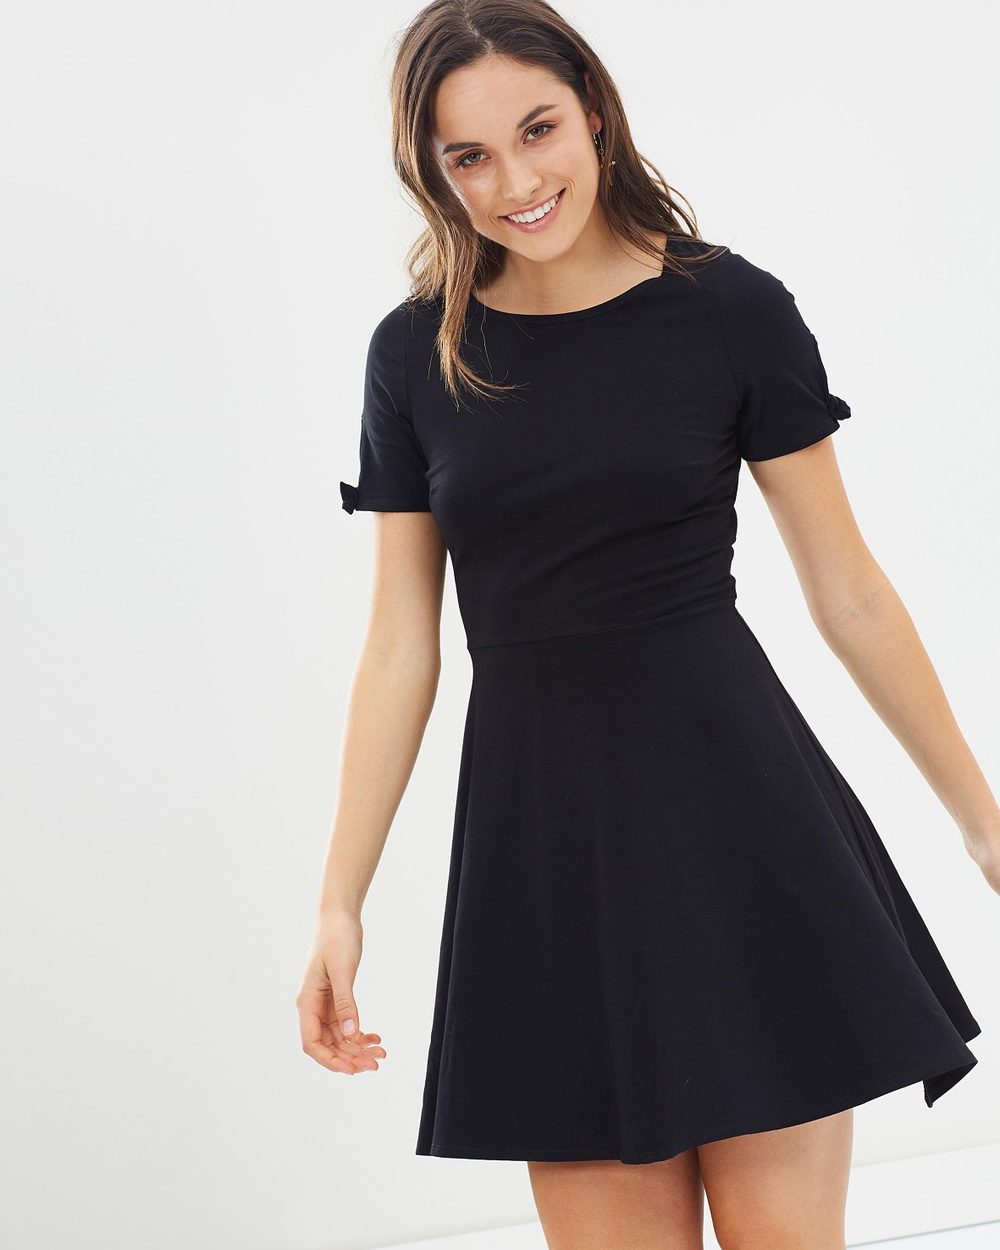 Dorothy Perkins Bow Short Sleeve Jersey Dress Dresses Black Bow Short Sleeve Jersey Dress